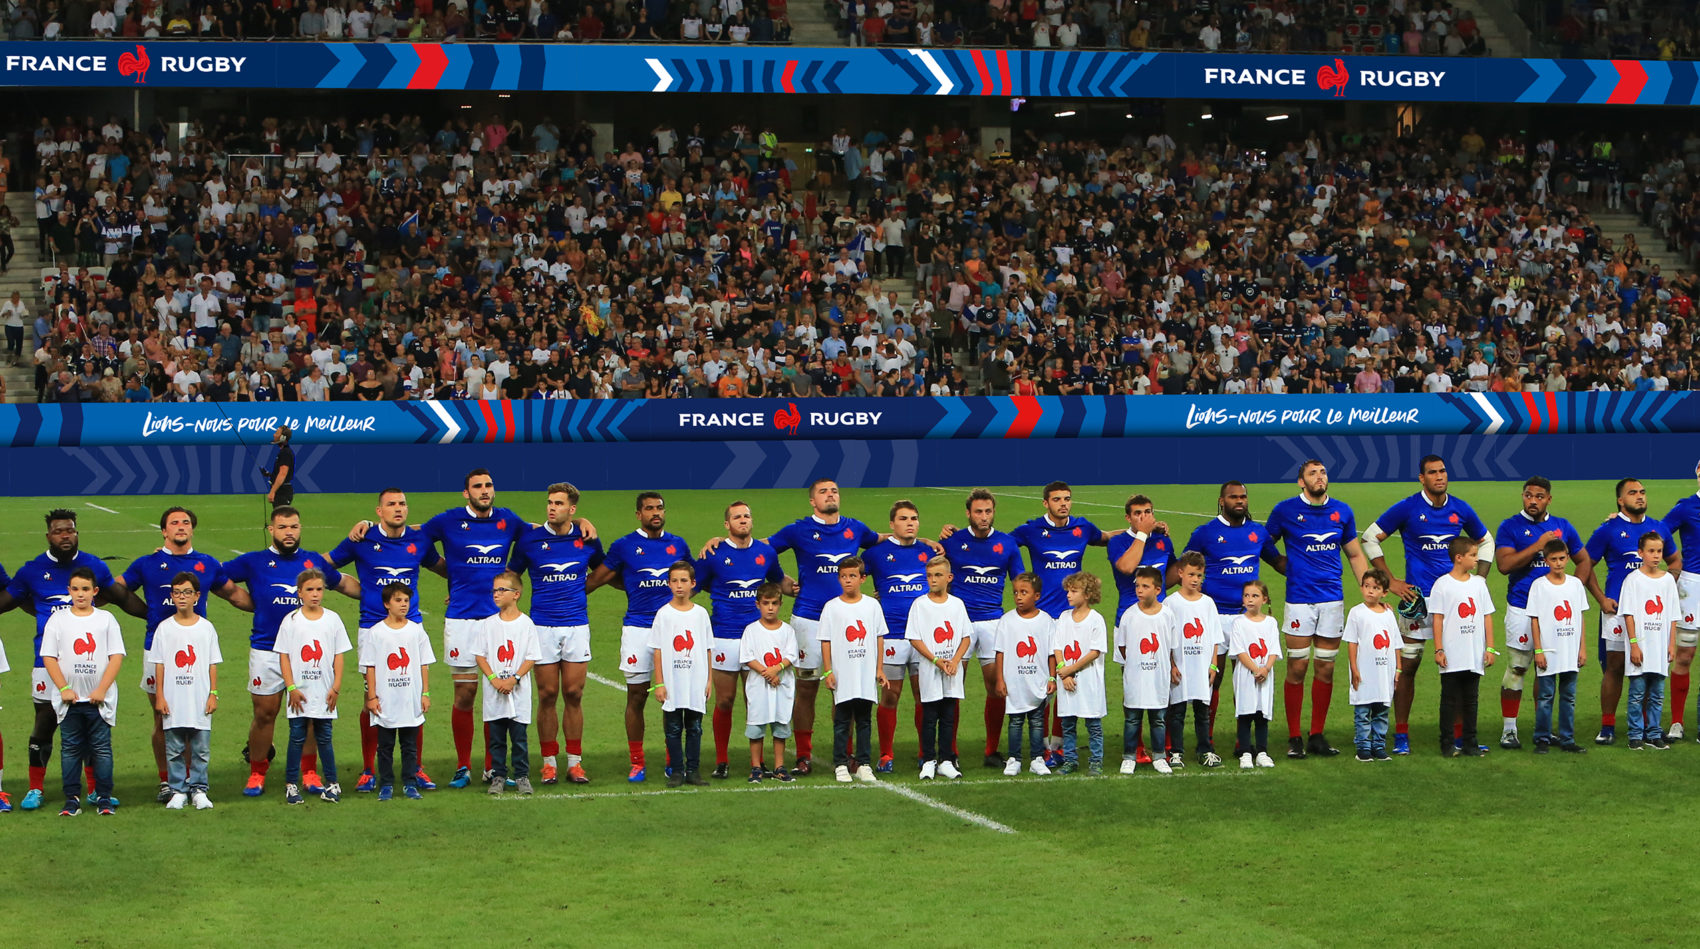 Projet_project_leroy_tremblot_FFR_federation_francaise_rugby_french_nouvelle_identite_new_identity_habillage_stade